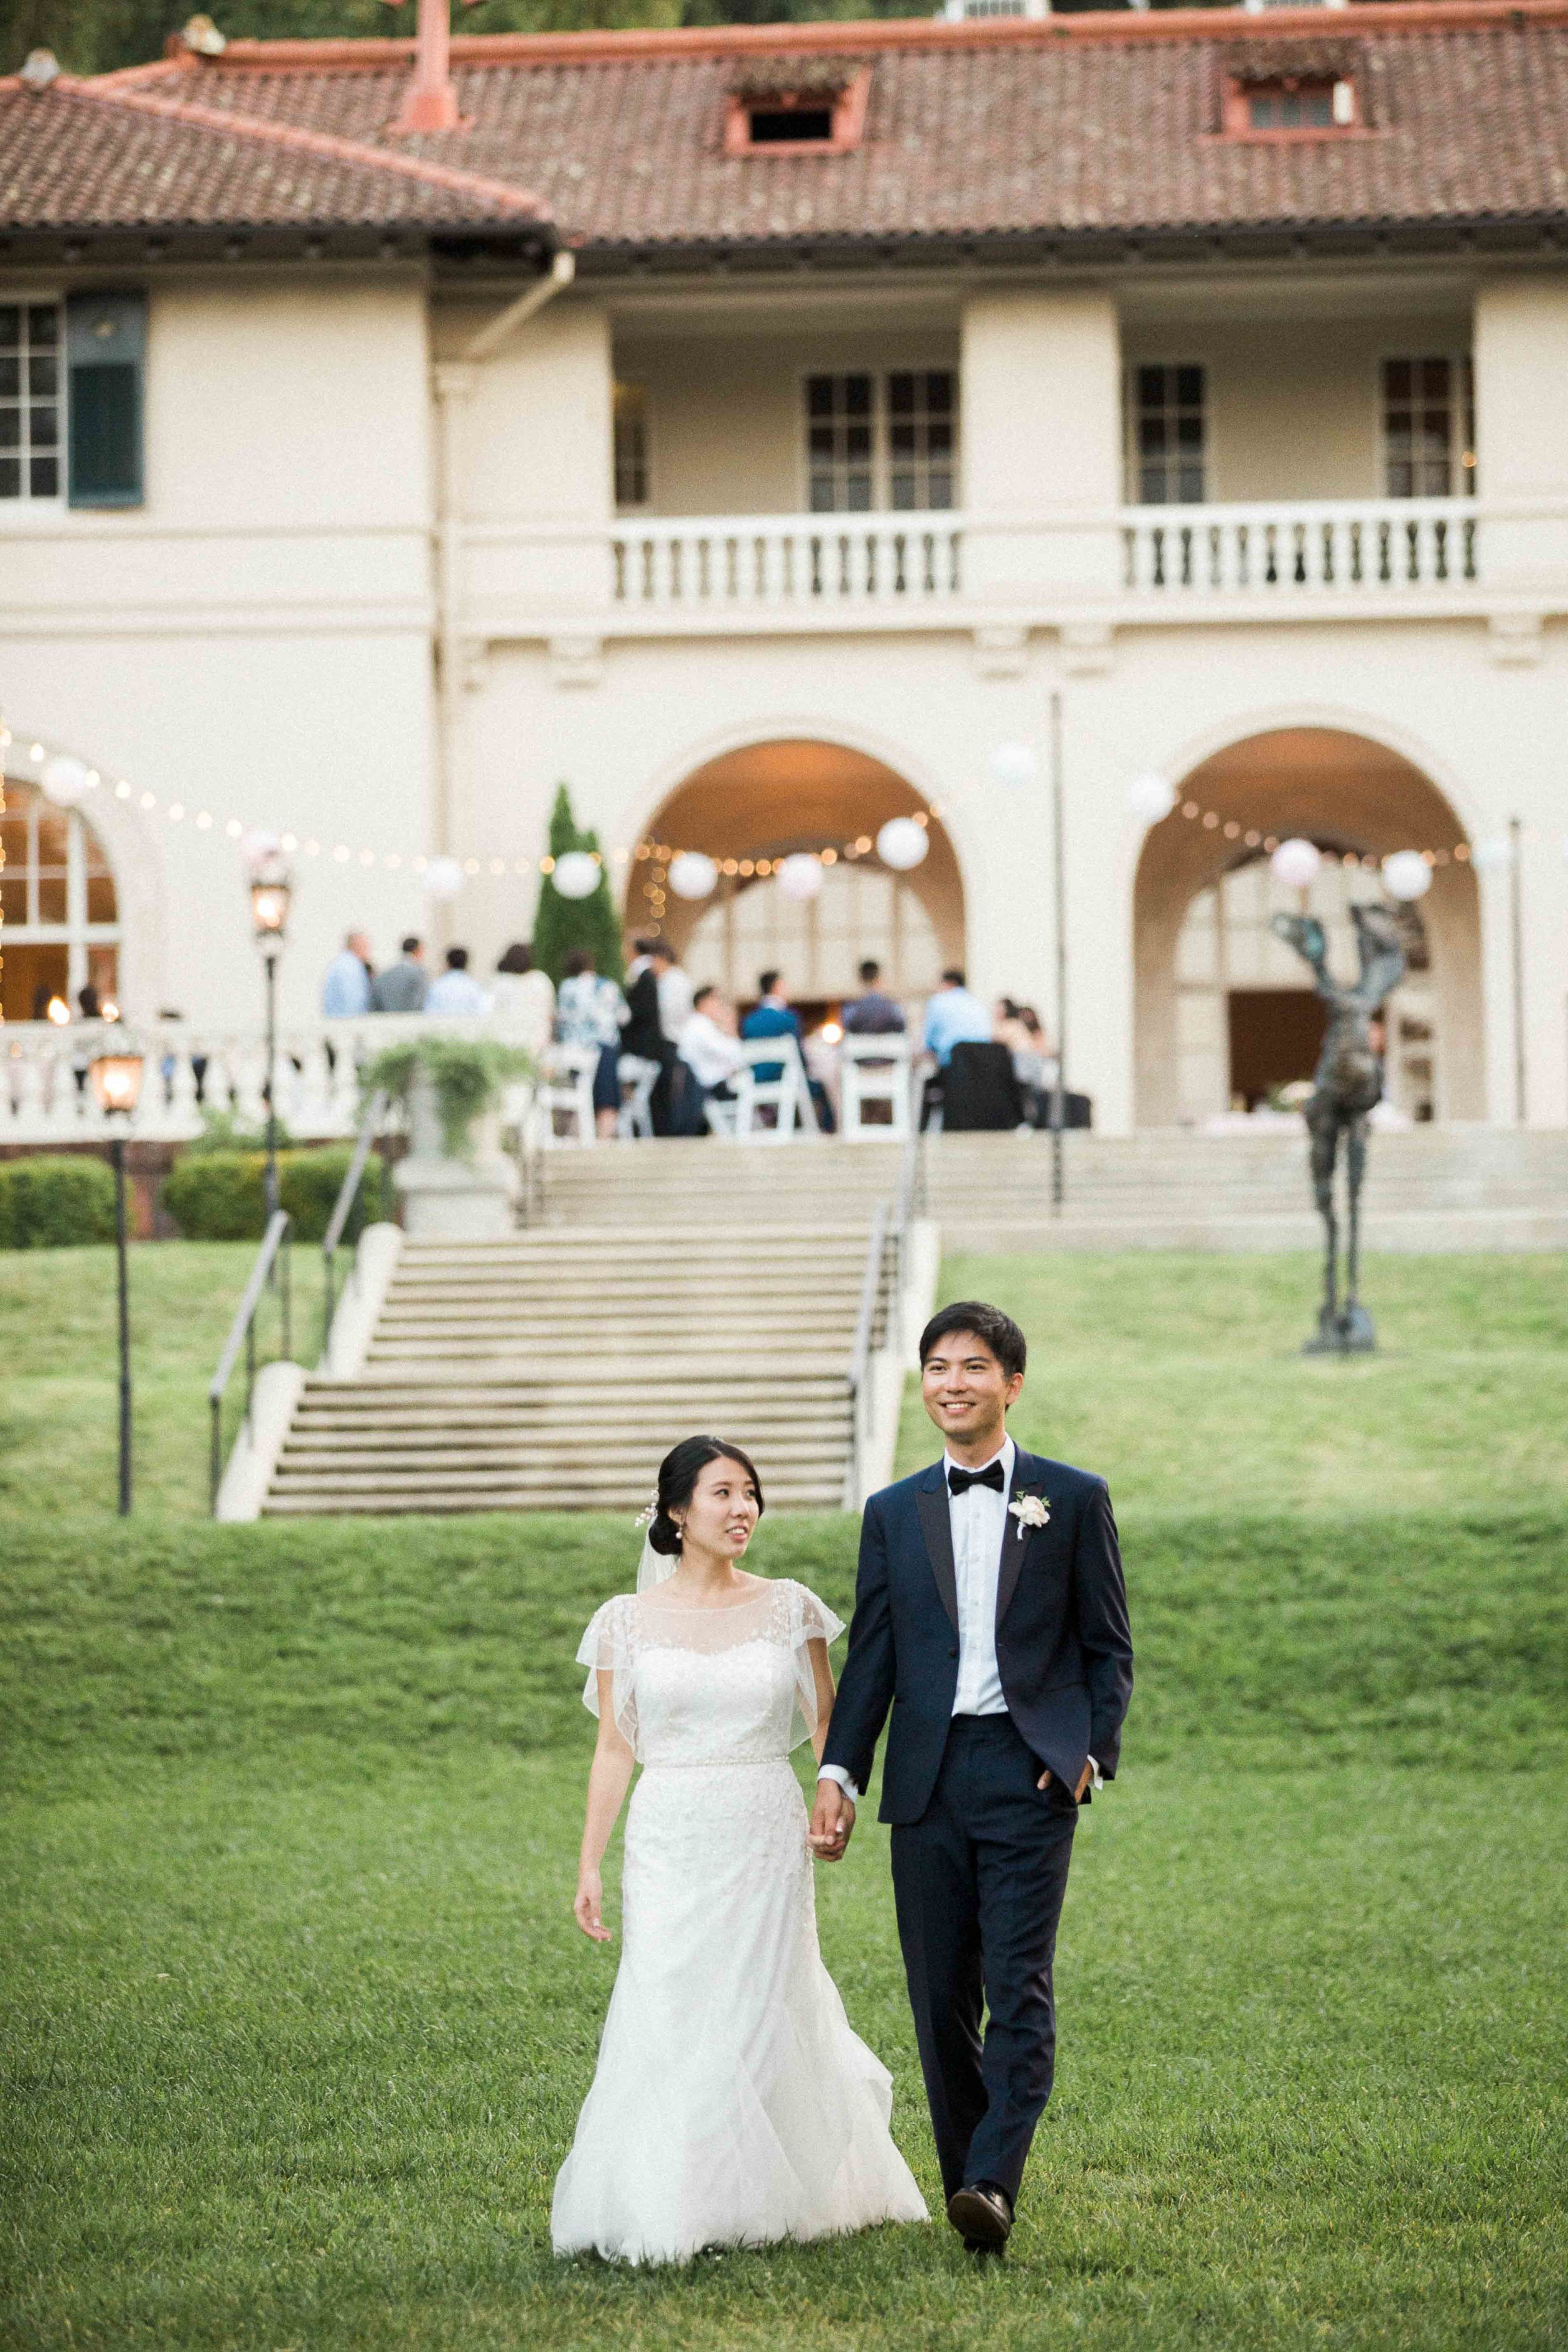 Villa_Montalvo_Wedding_Photographer_Videographer_San_Francisco188.jpg